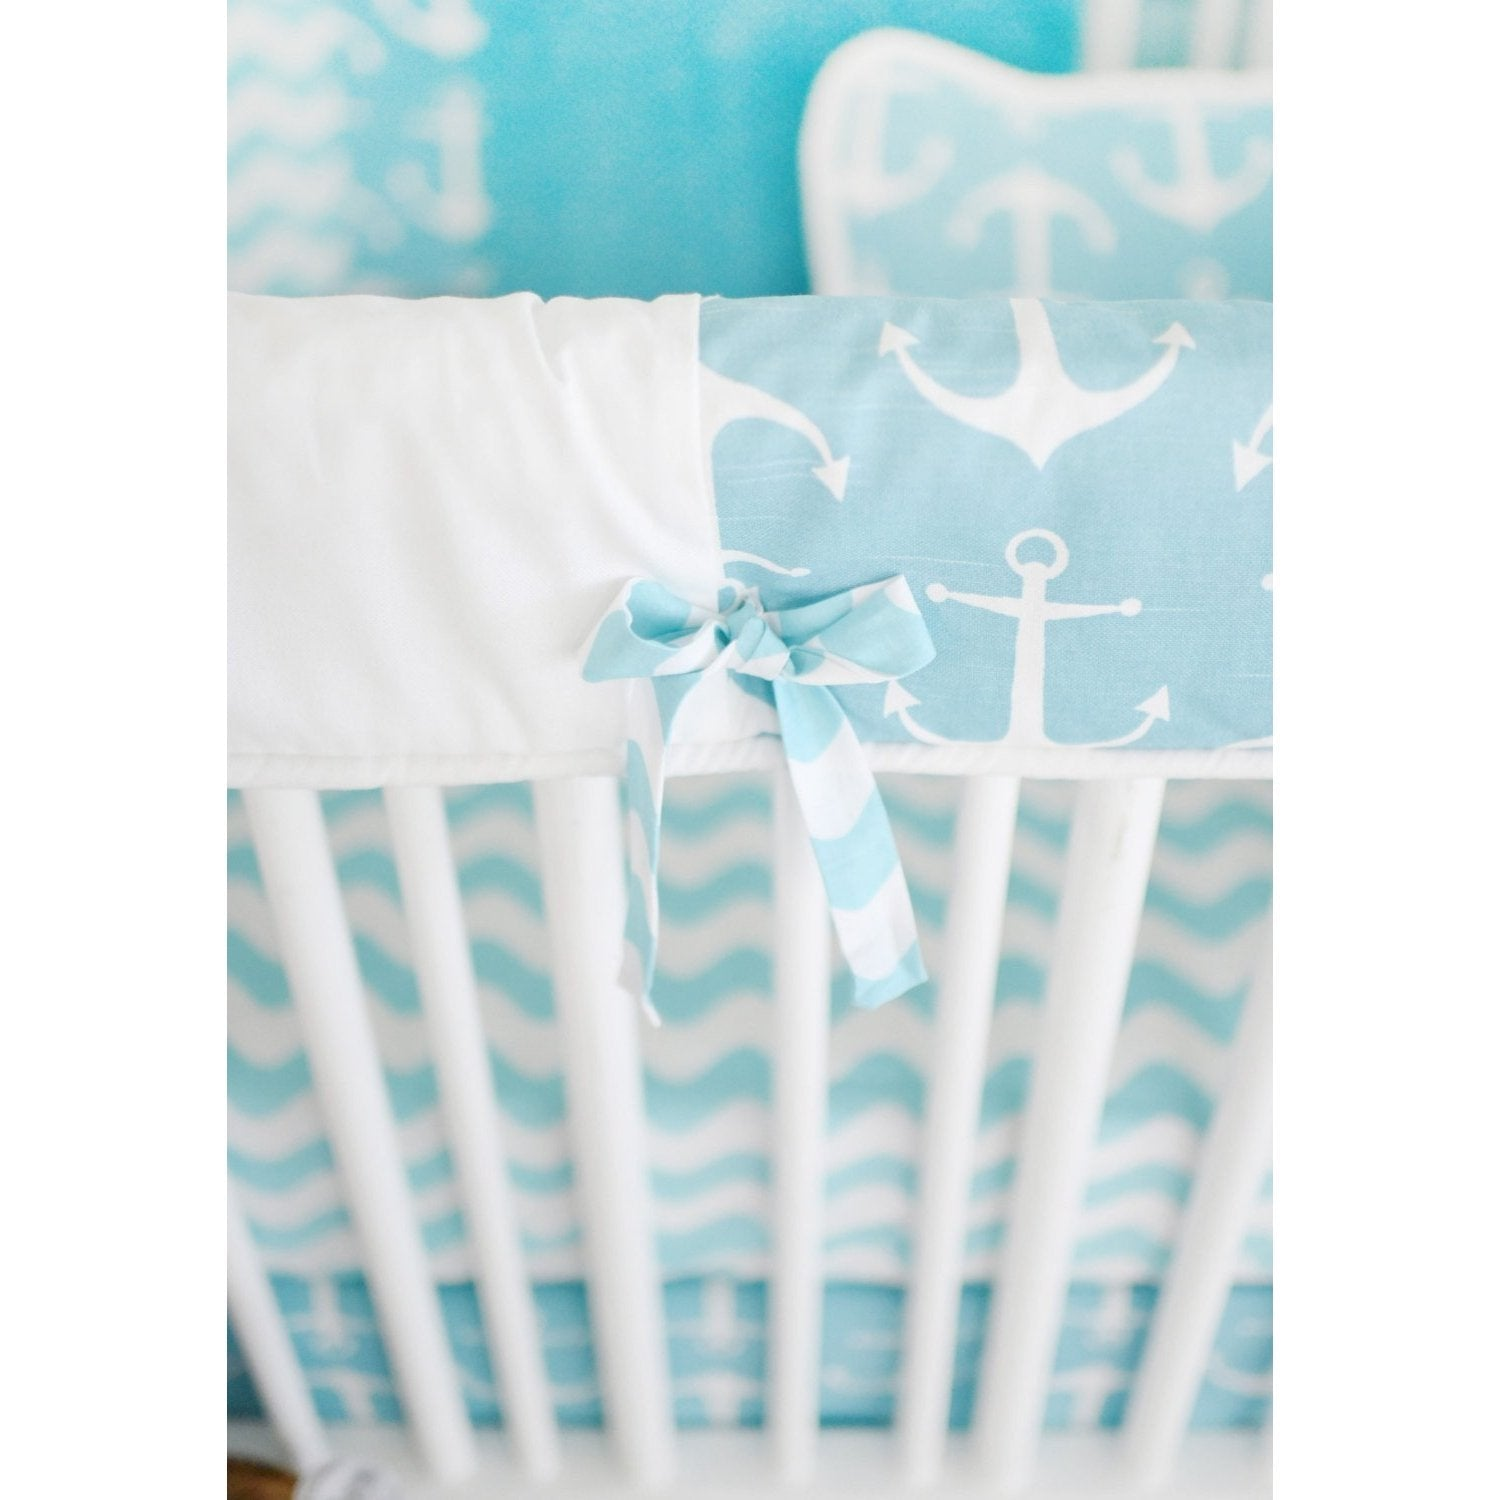 yard and world sheets concept uk travel xfile inspiration aqua map uncategorized mint crib fabric for picture nautical baby by the girl fascinating bedding coral cribs